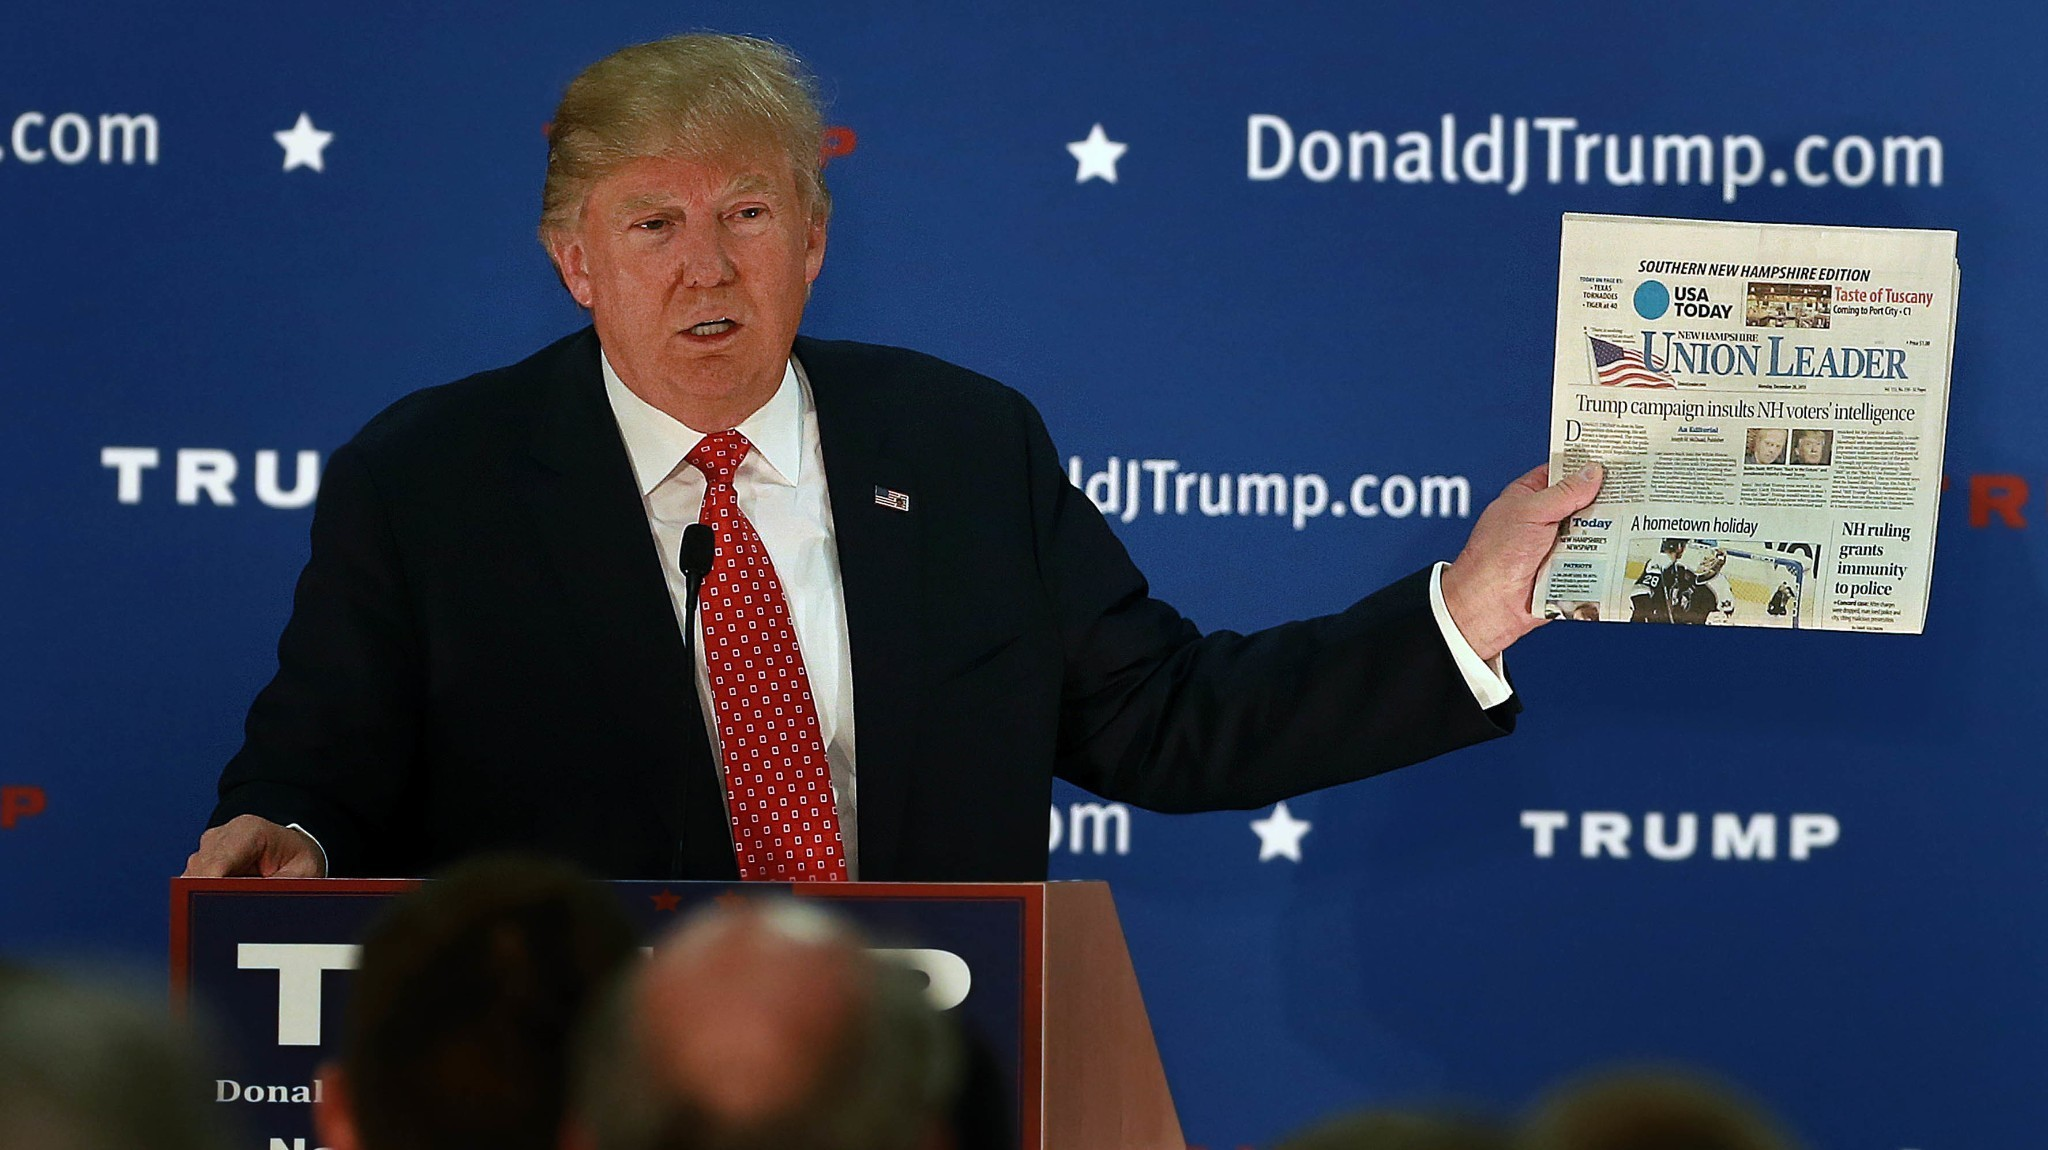 How The Media Failed In Covering Donald Trump